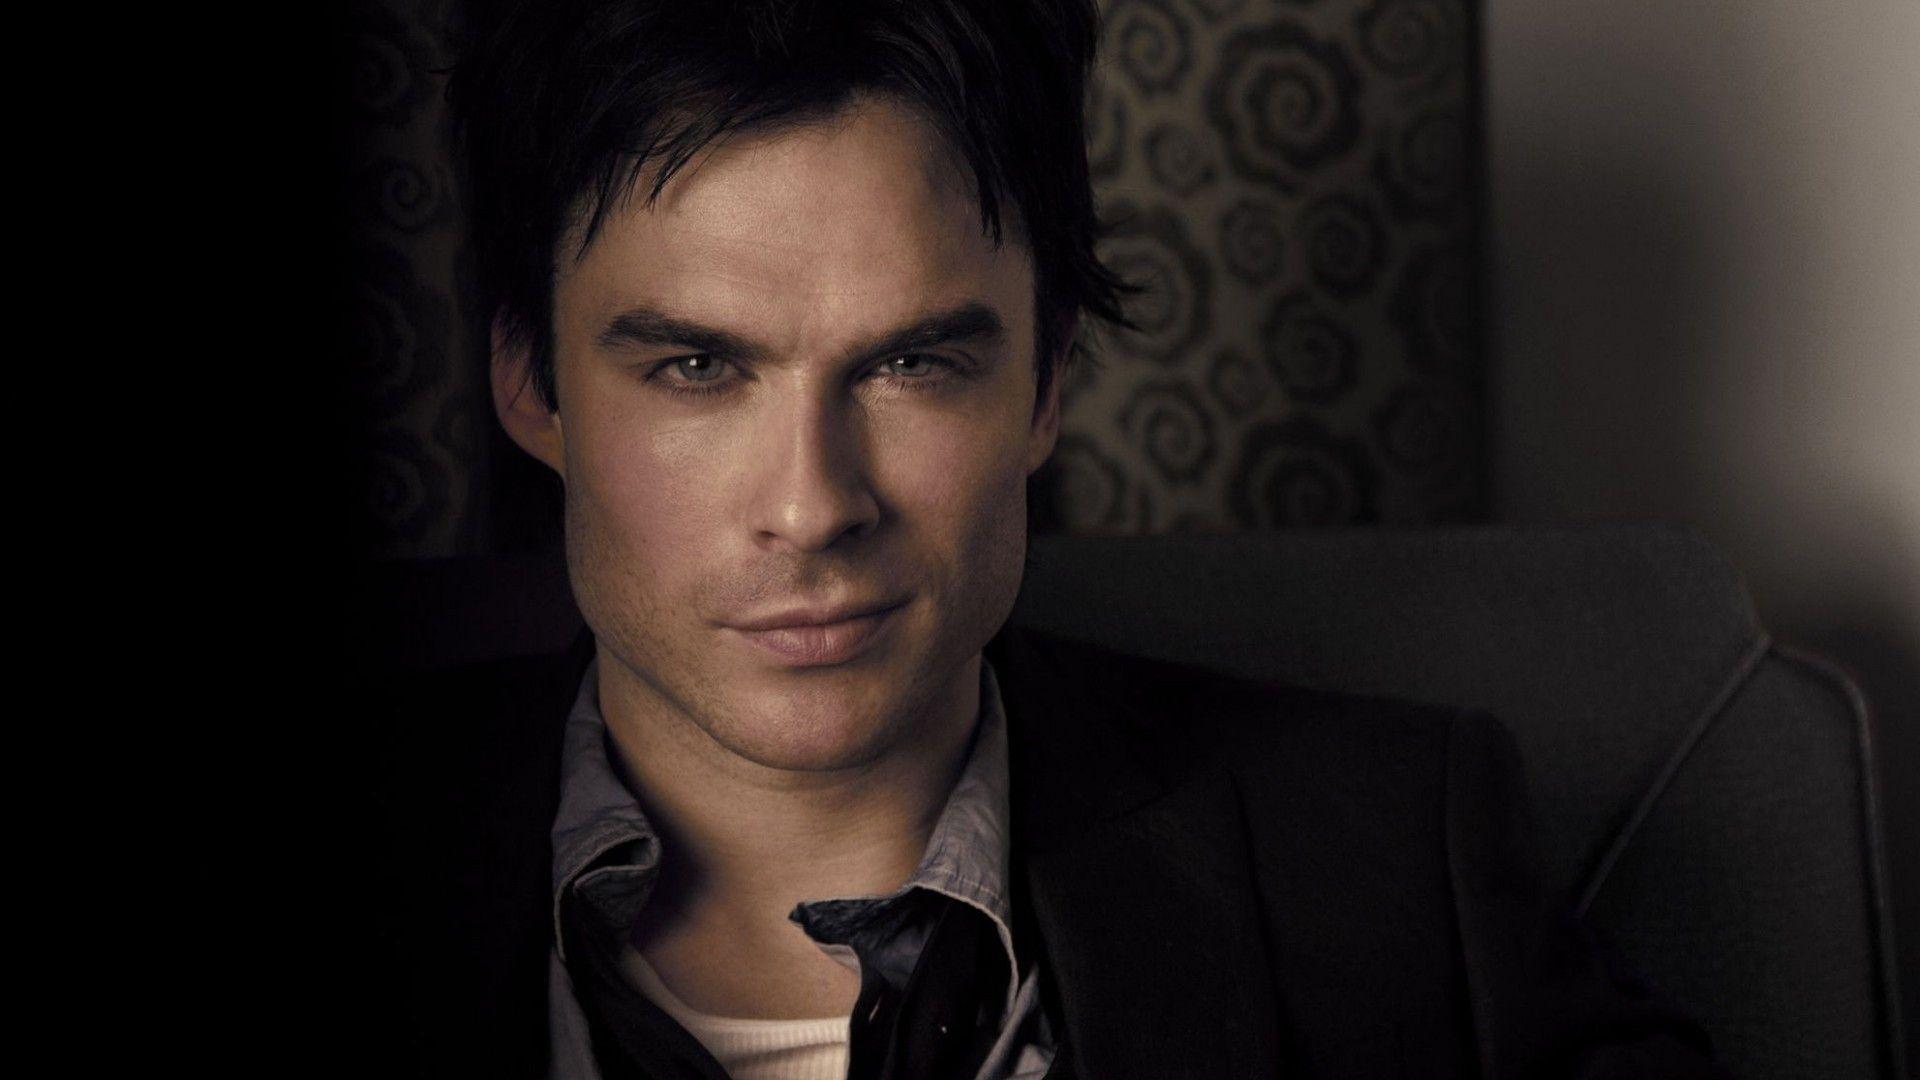 Damon Salvatore Vampire Diaries Wallpapers